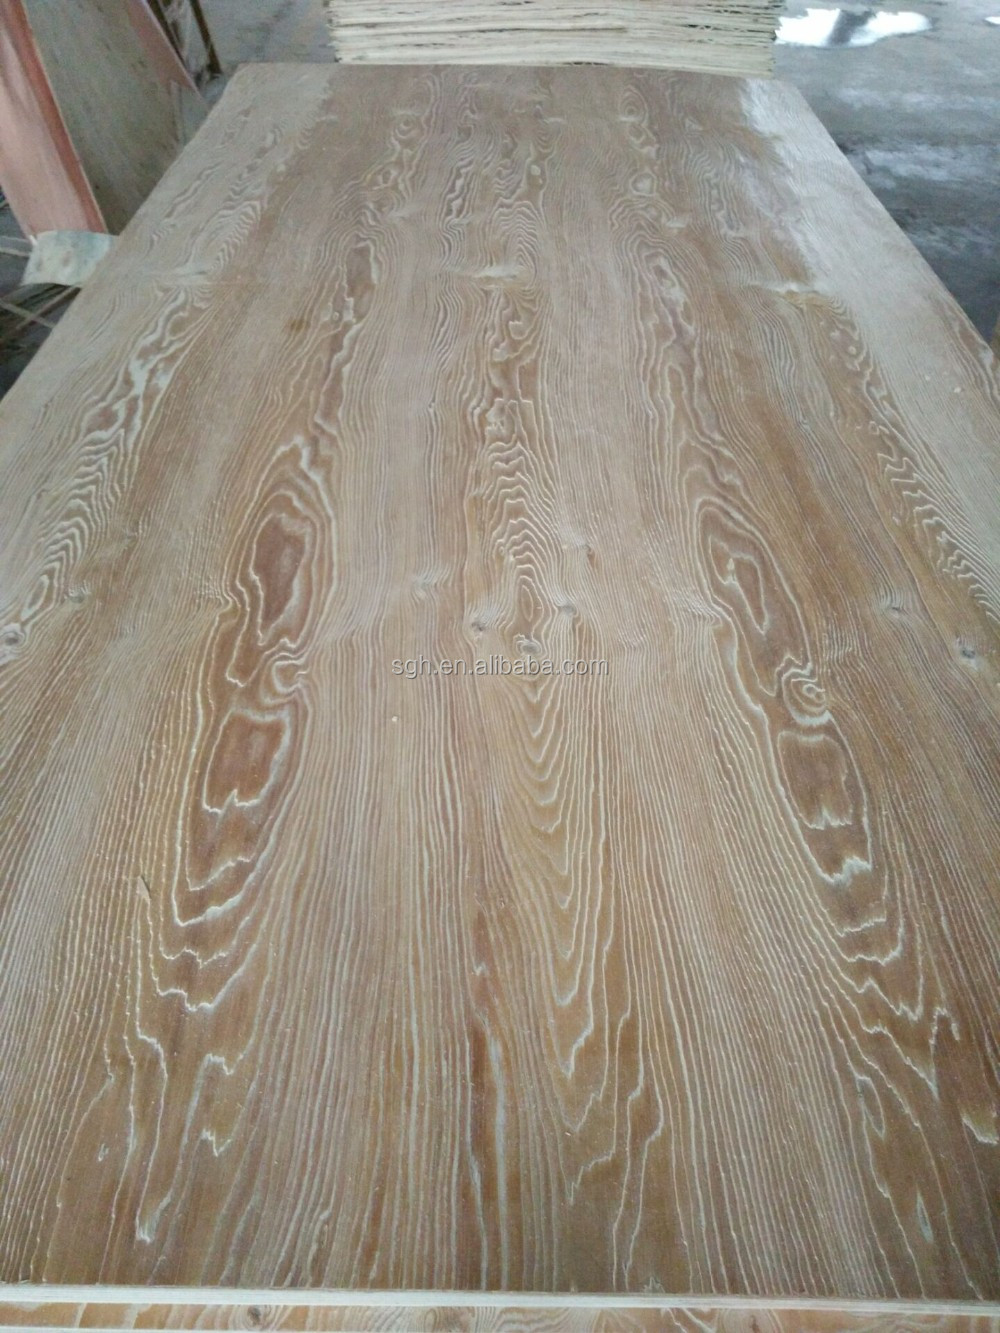 1220*2440mm E0 grade Okoume Plywood Supplier from China